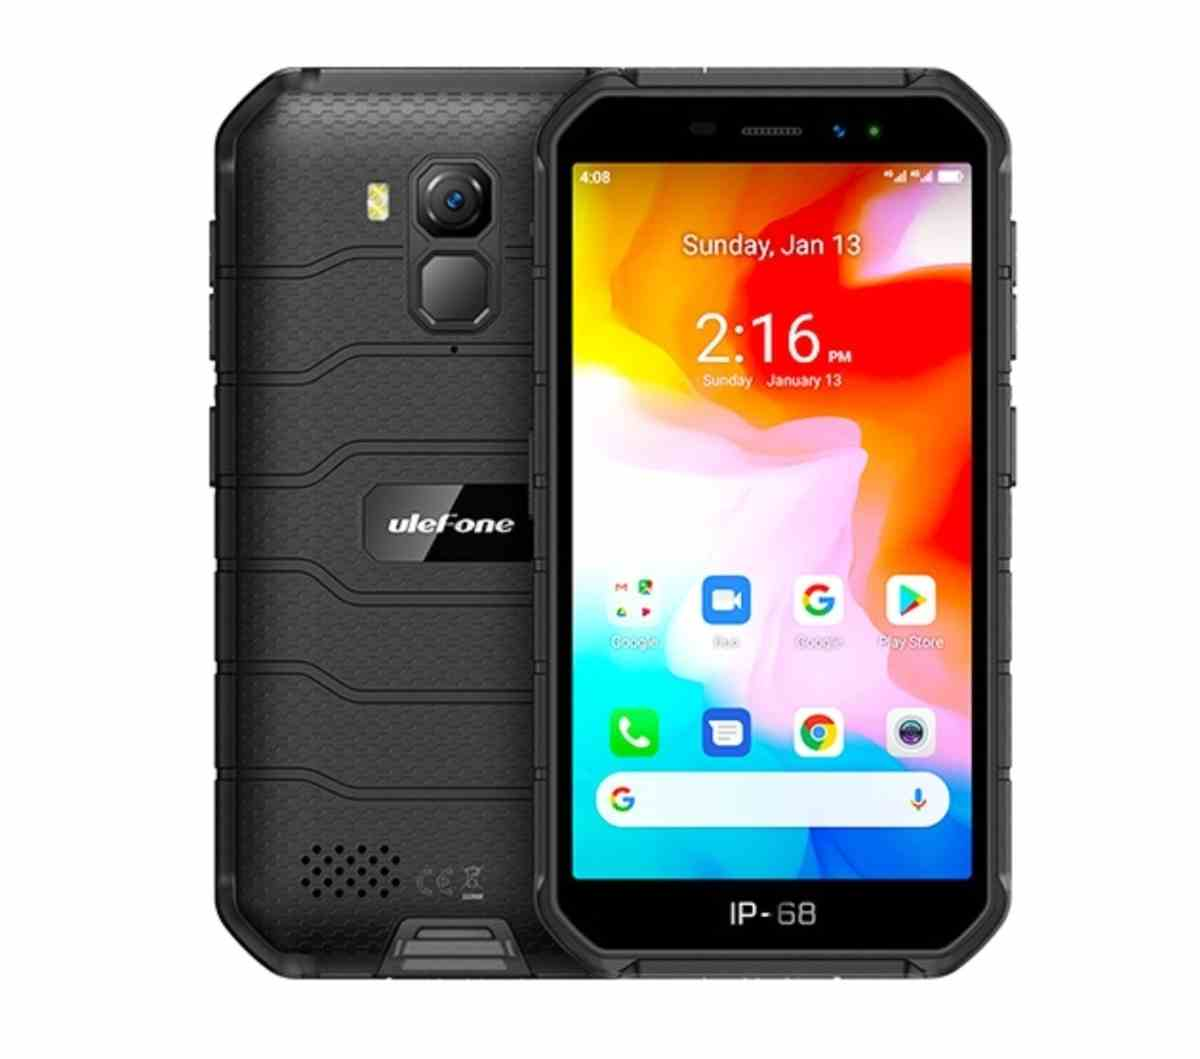 Ulefone Armor X7 price in Nigeria, Ulefone Armor X7 in india, How much is the price of Ulefone Armor, price of Ulefone Armor X7 in Nigeria, Ulefone Armor X7 specs and price in Nigeria, Ulefone Armor X7 specs, Ulefone Armor X7 price, Ulefone Armor X7 full specifications, Ulefone Armor X7 price in USA, uae, Ulefone Armor X7 and price in Nigeria, Ulefone Armor X7 in Nigeria